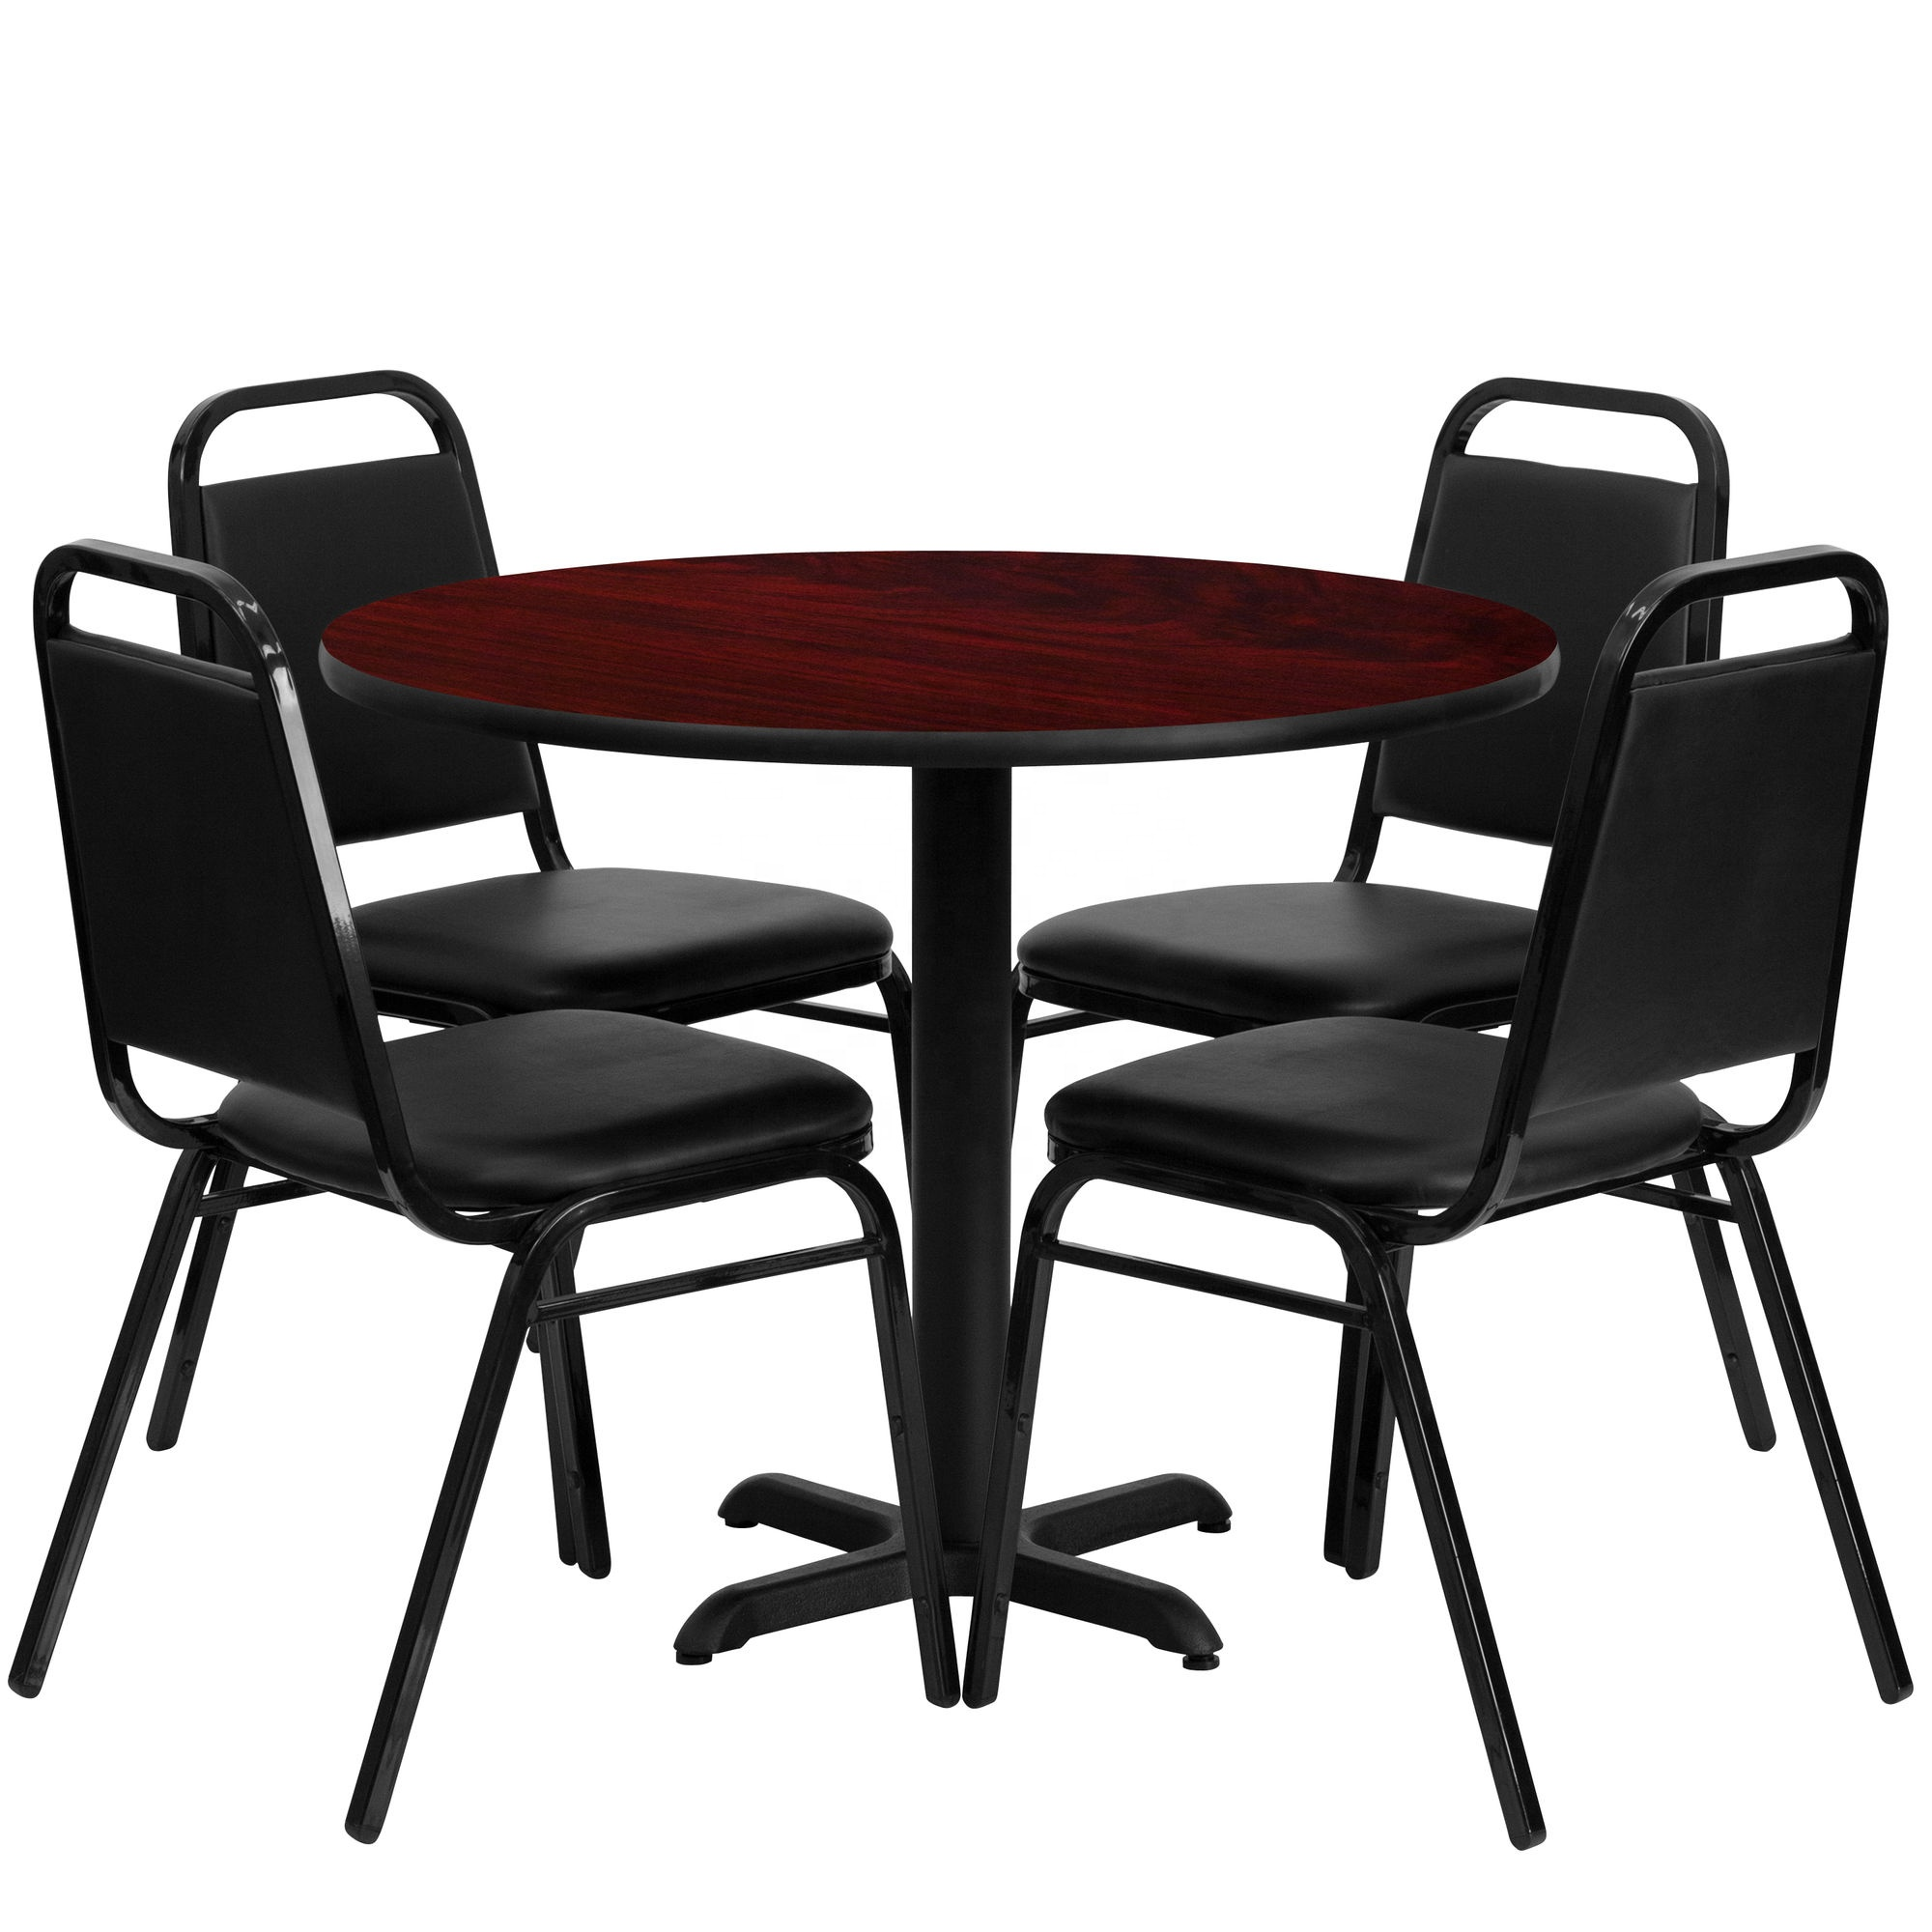 Full Set Modern Cheap Tables And Chairs Wholesale Used Restaurant Furniture